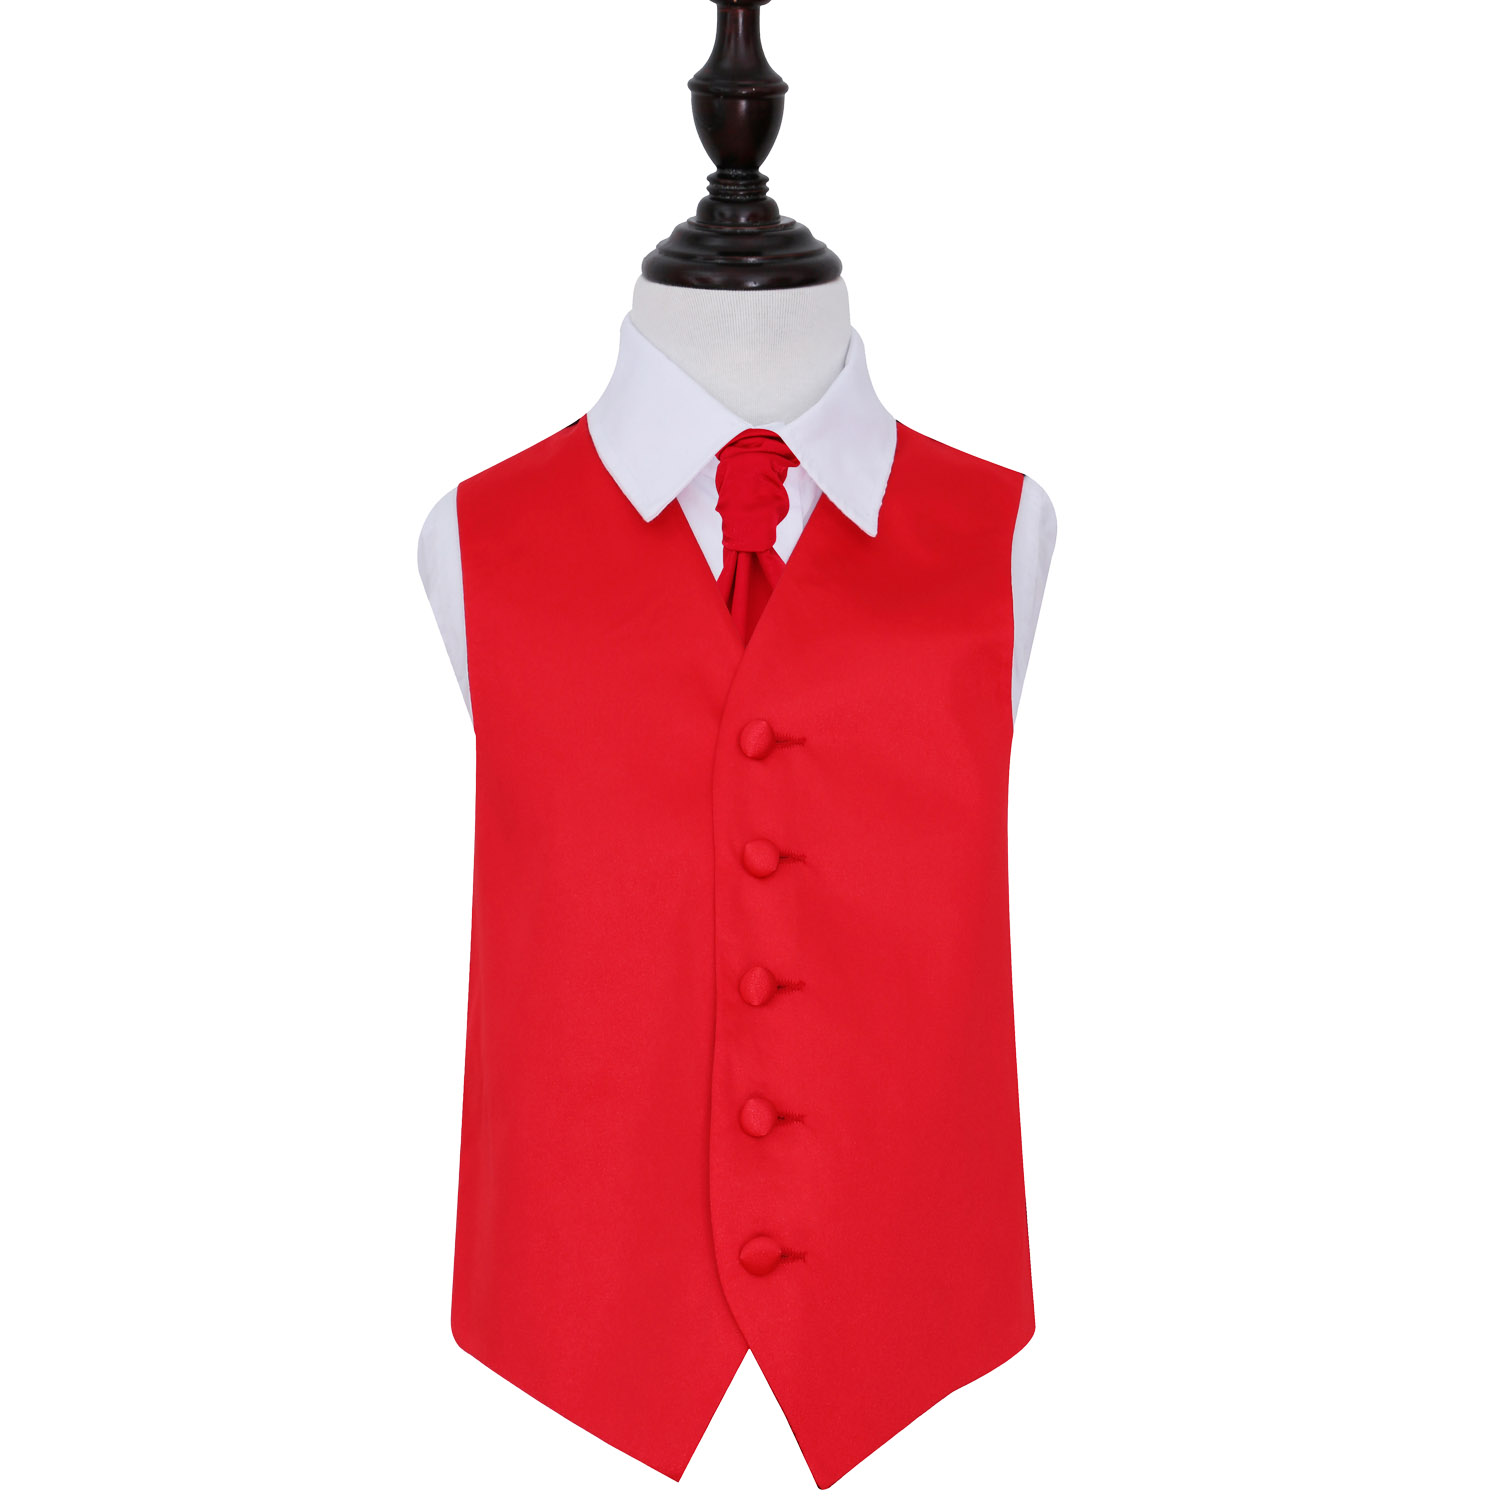 Boys bright red satin waistcoat and adjustable tie set by Romano Vianni. Made in a smooth silky fabric, this classic style waistcoat has covered buttons, two faux front pockets and a contrasting back panel in black with an adjustable buckle.